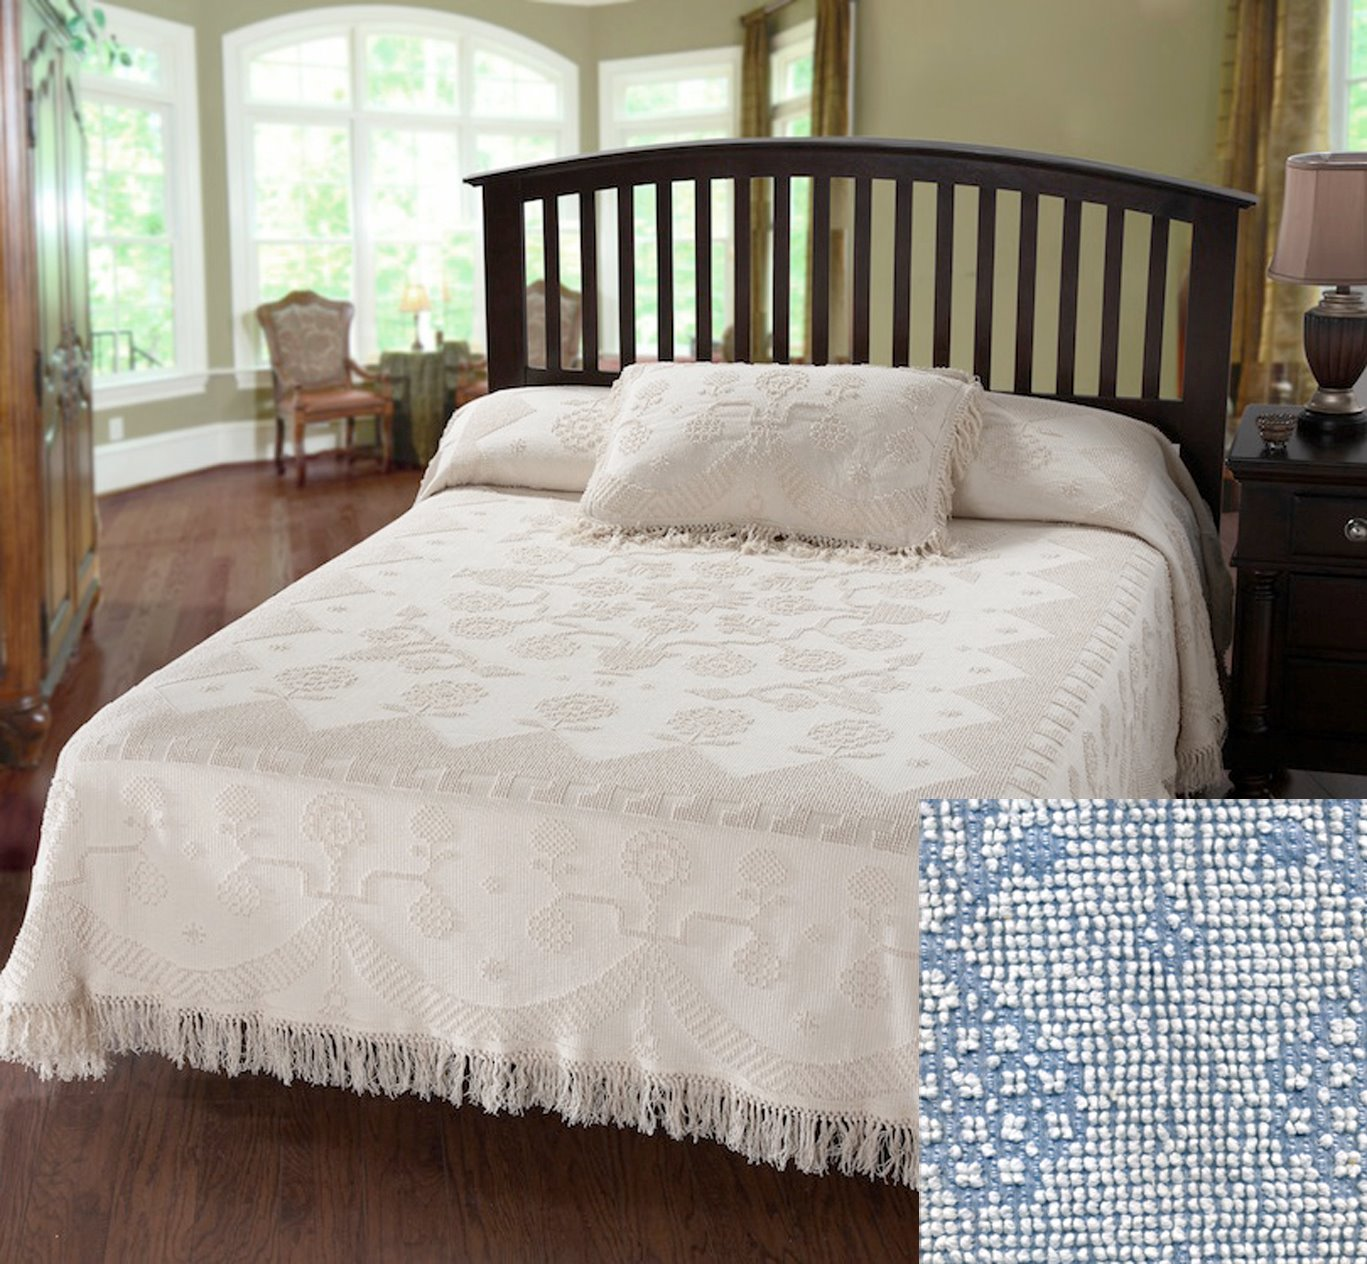 George Washington Bedspread Queen Blue